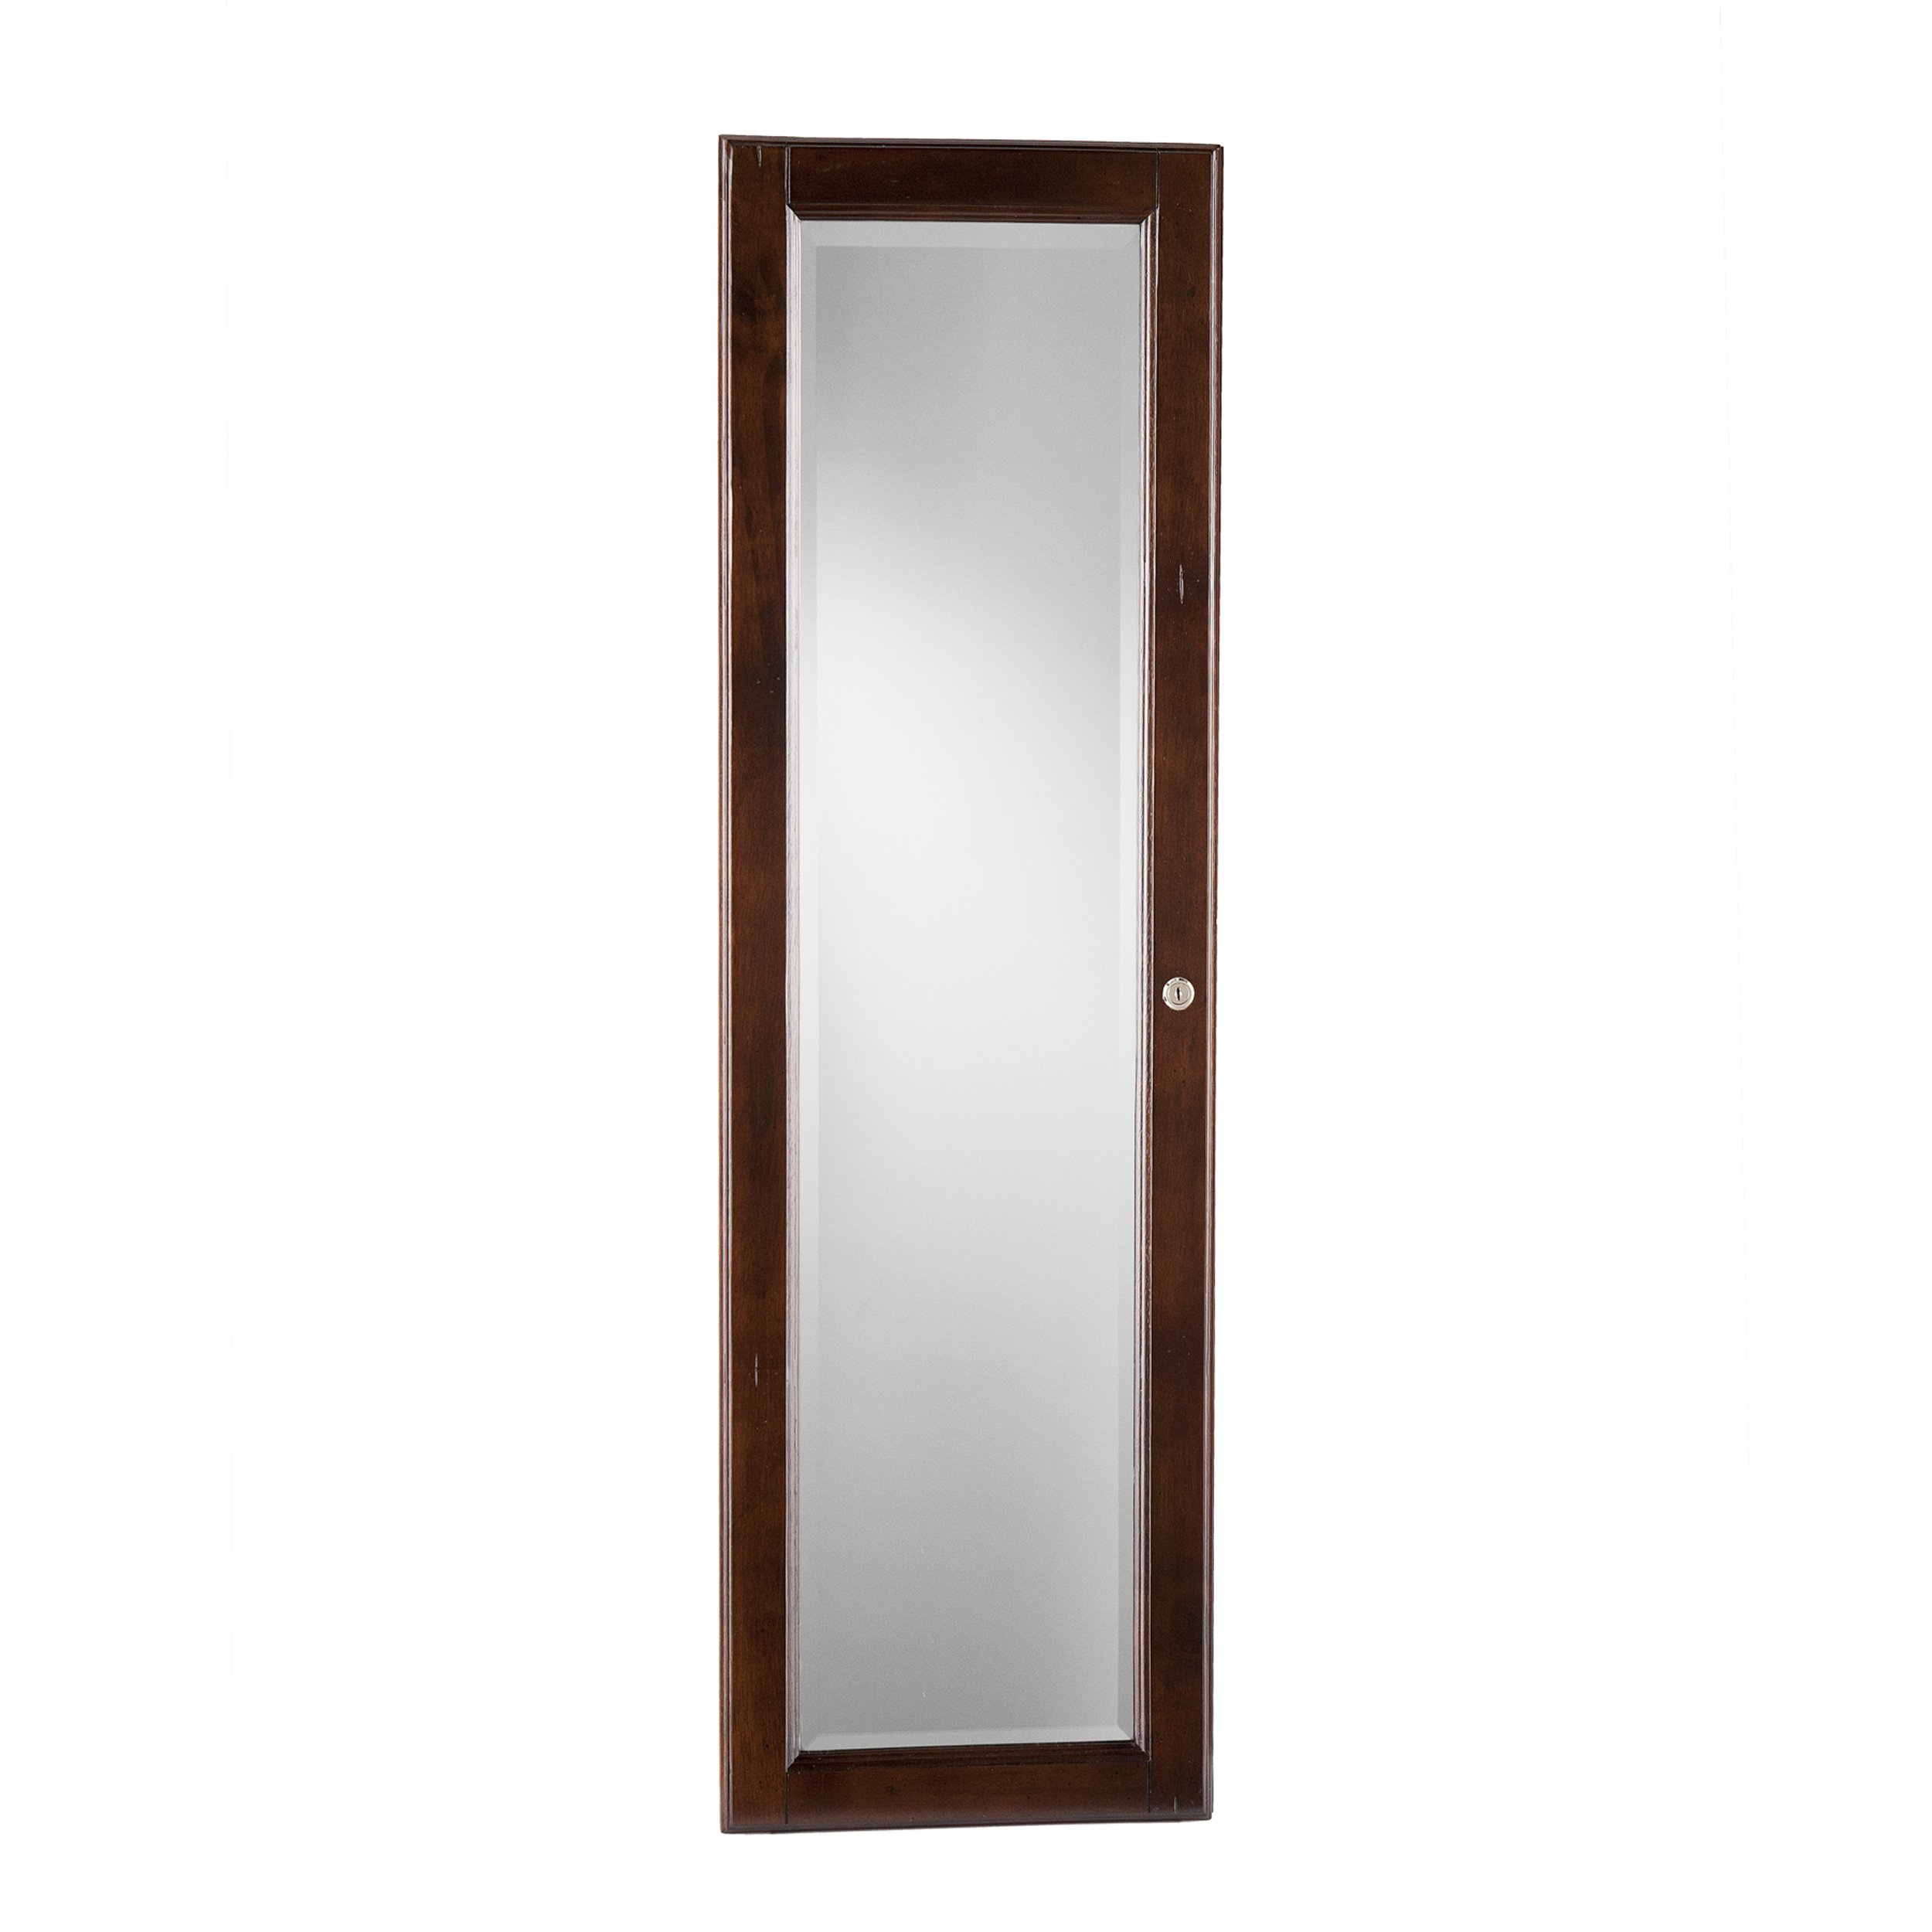 Wall Mount Jewelry Mirror - Brown Walnut by Southern Enterprises